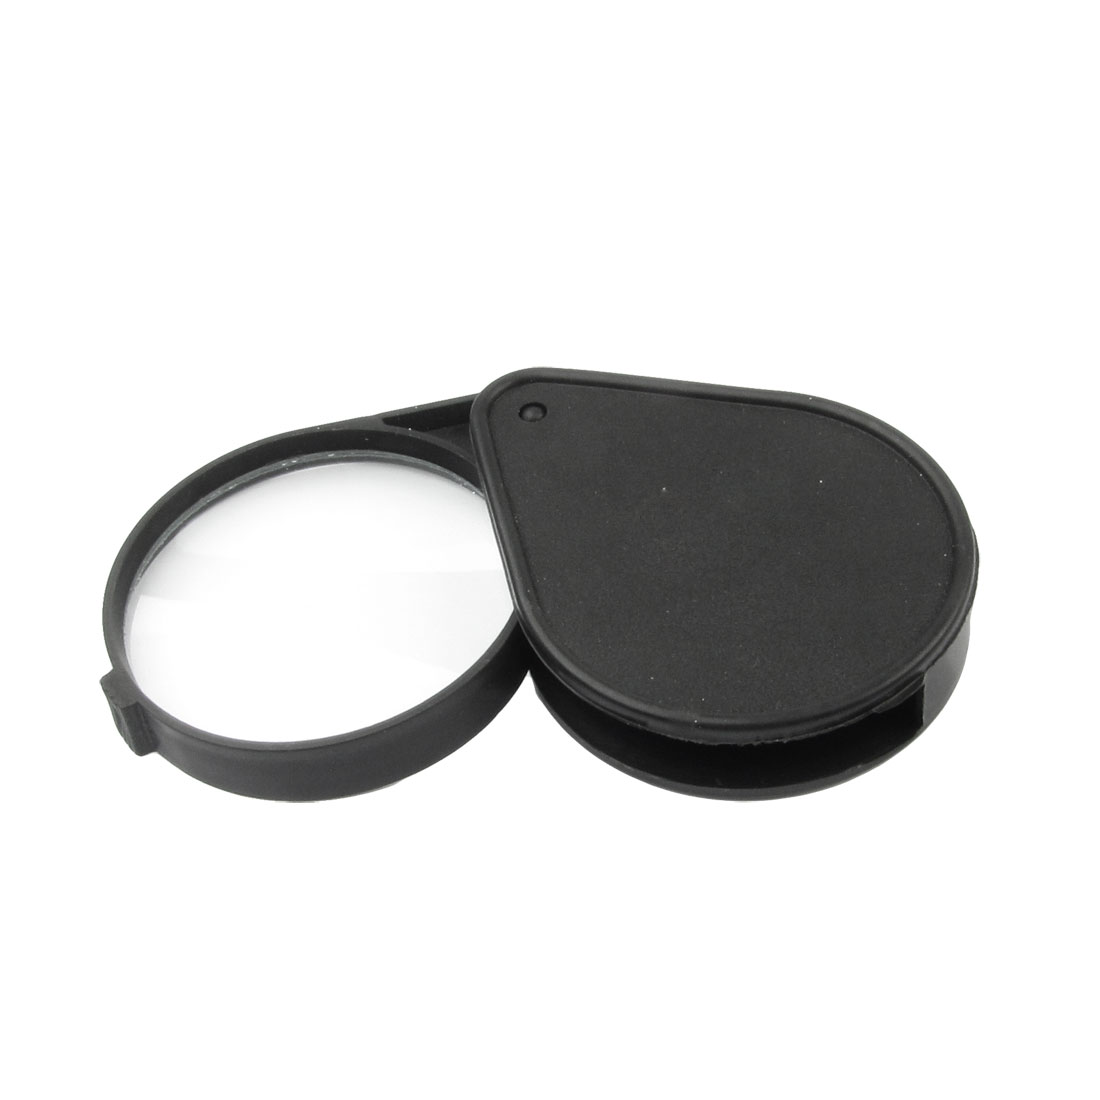 Plastic Black Water Drop Shape Case 60mm Dia Map Loupe 5X Magnifier